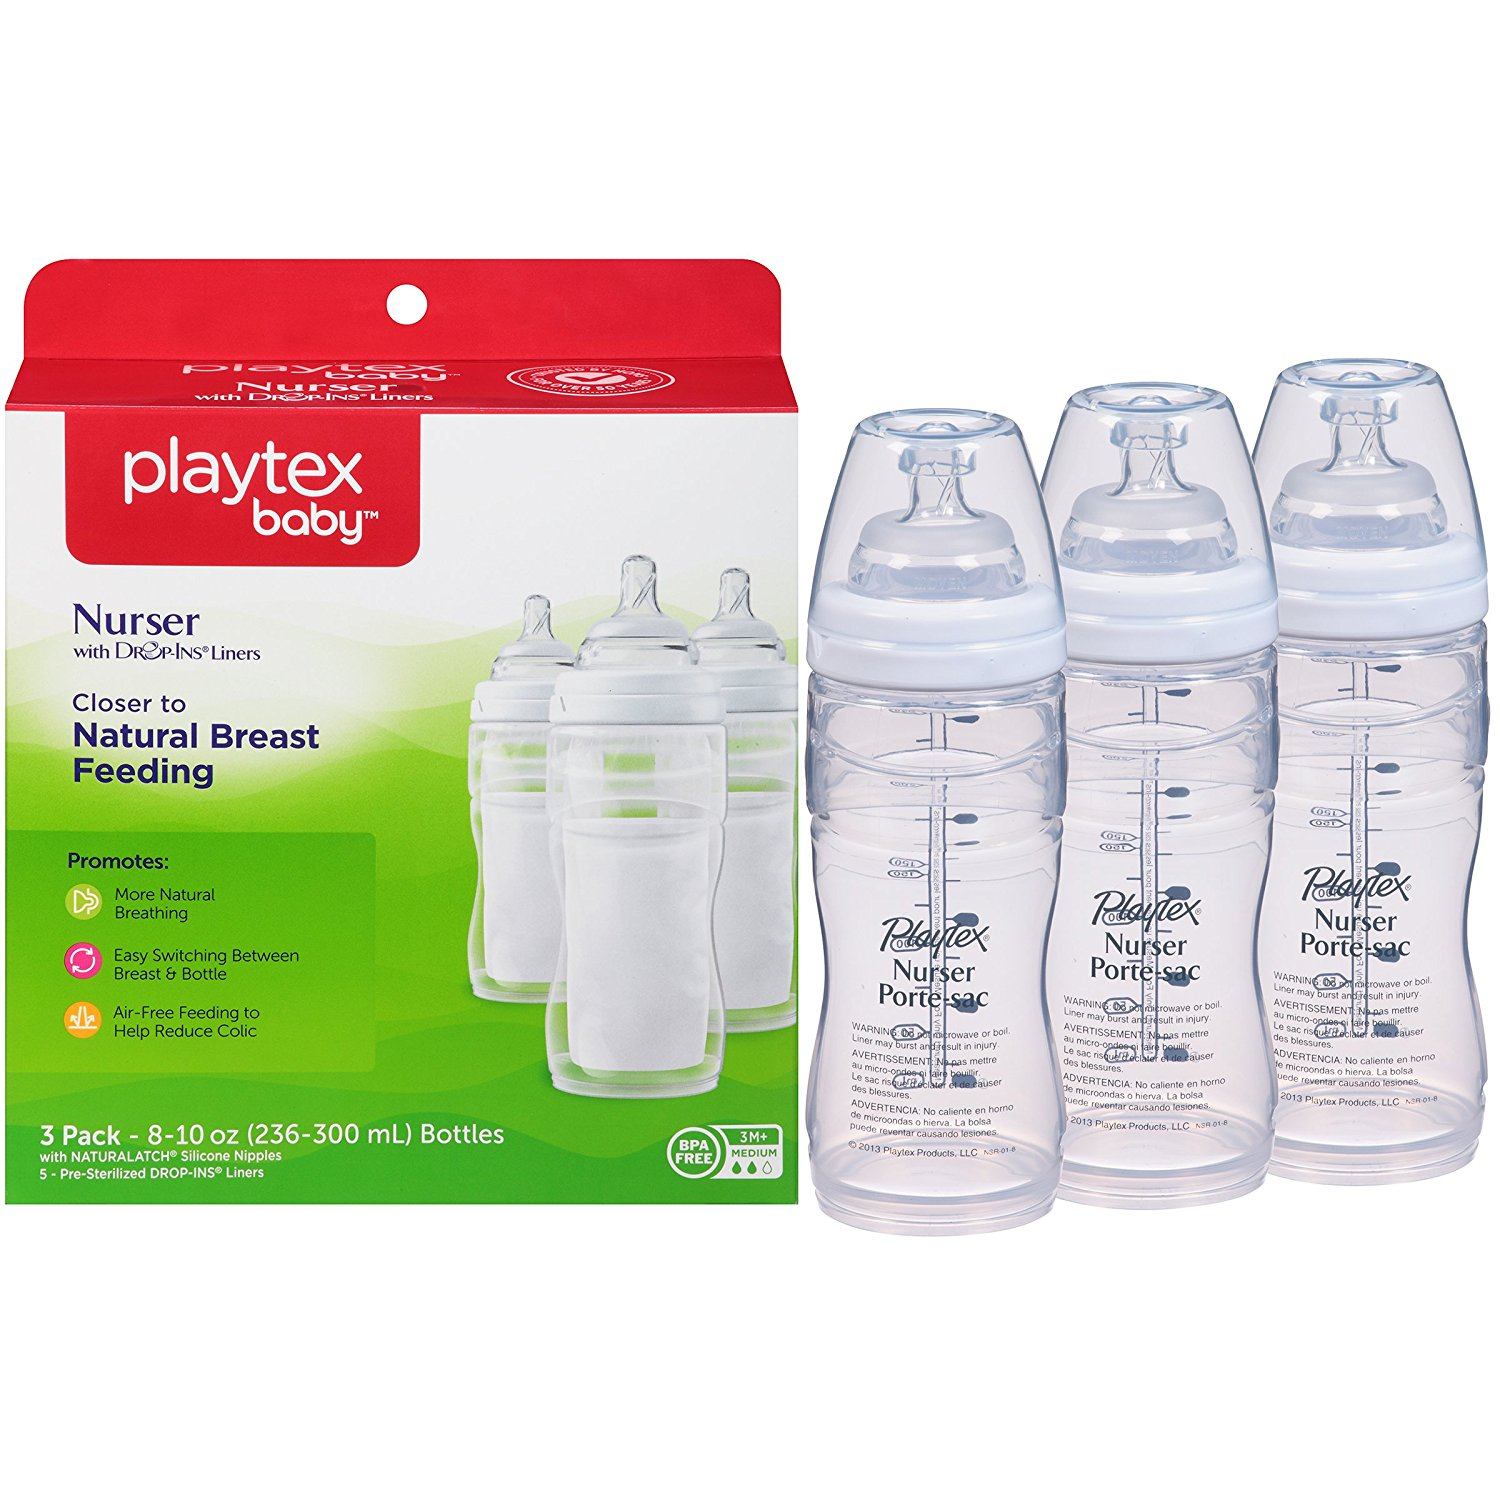 playtex baby nurser baby bottle with drop-ins disposable liners, baby bottles, best baby bottles, plastic baby bottles, affordable baby bottles, baby bottles with liners